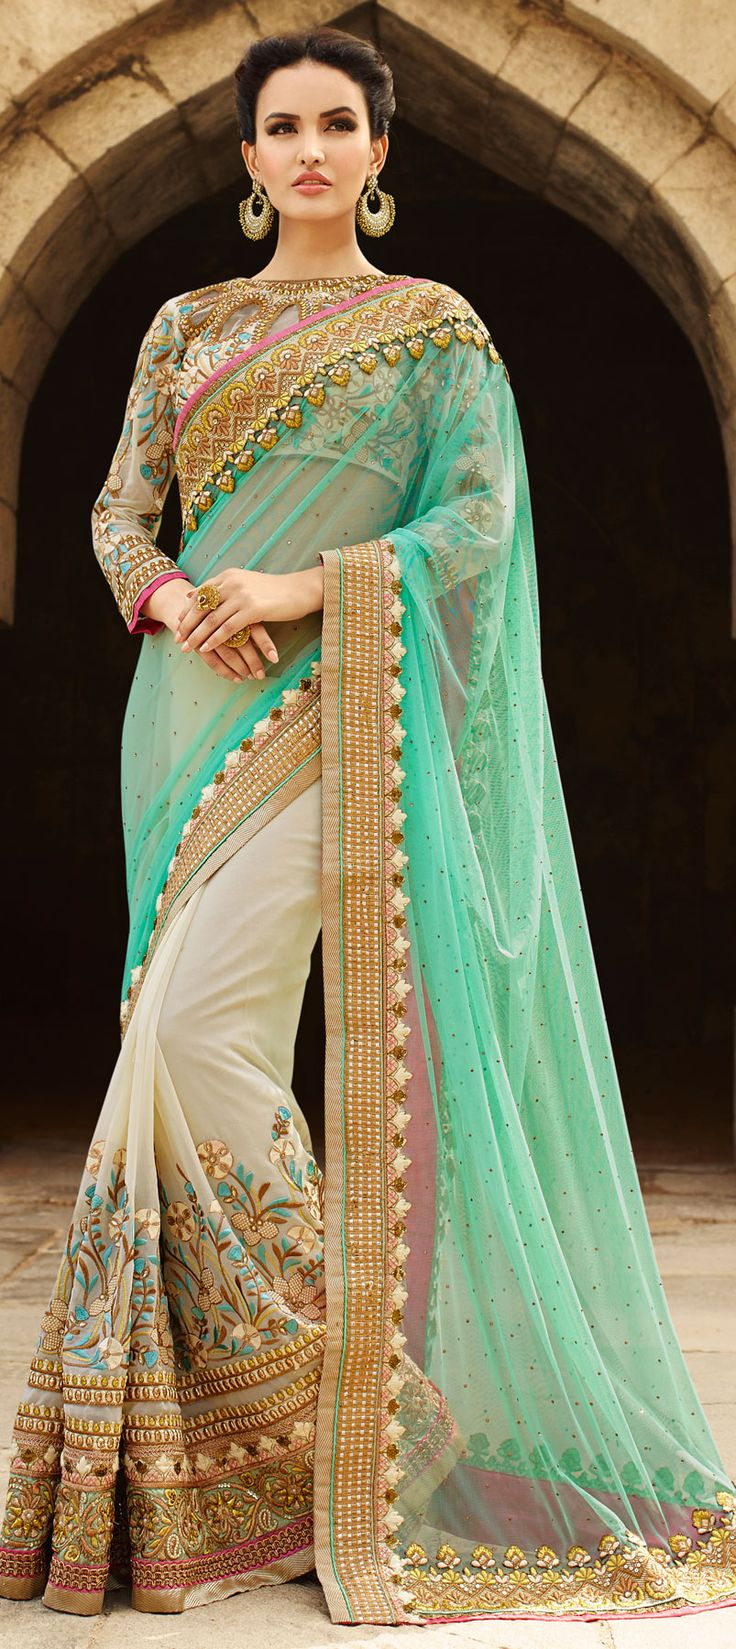 180739: Green, White and Off White color family Bridal Wedding Sarees with matching unstitched blouse.